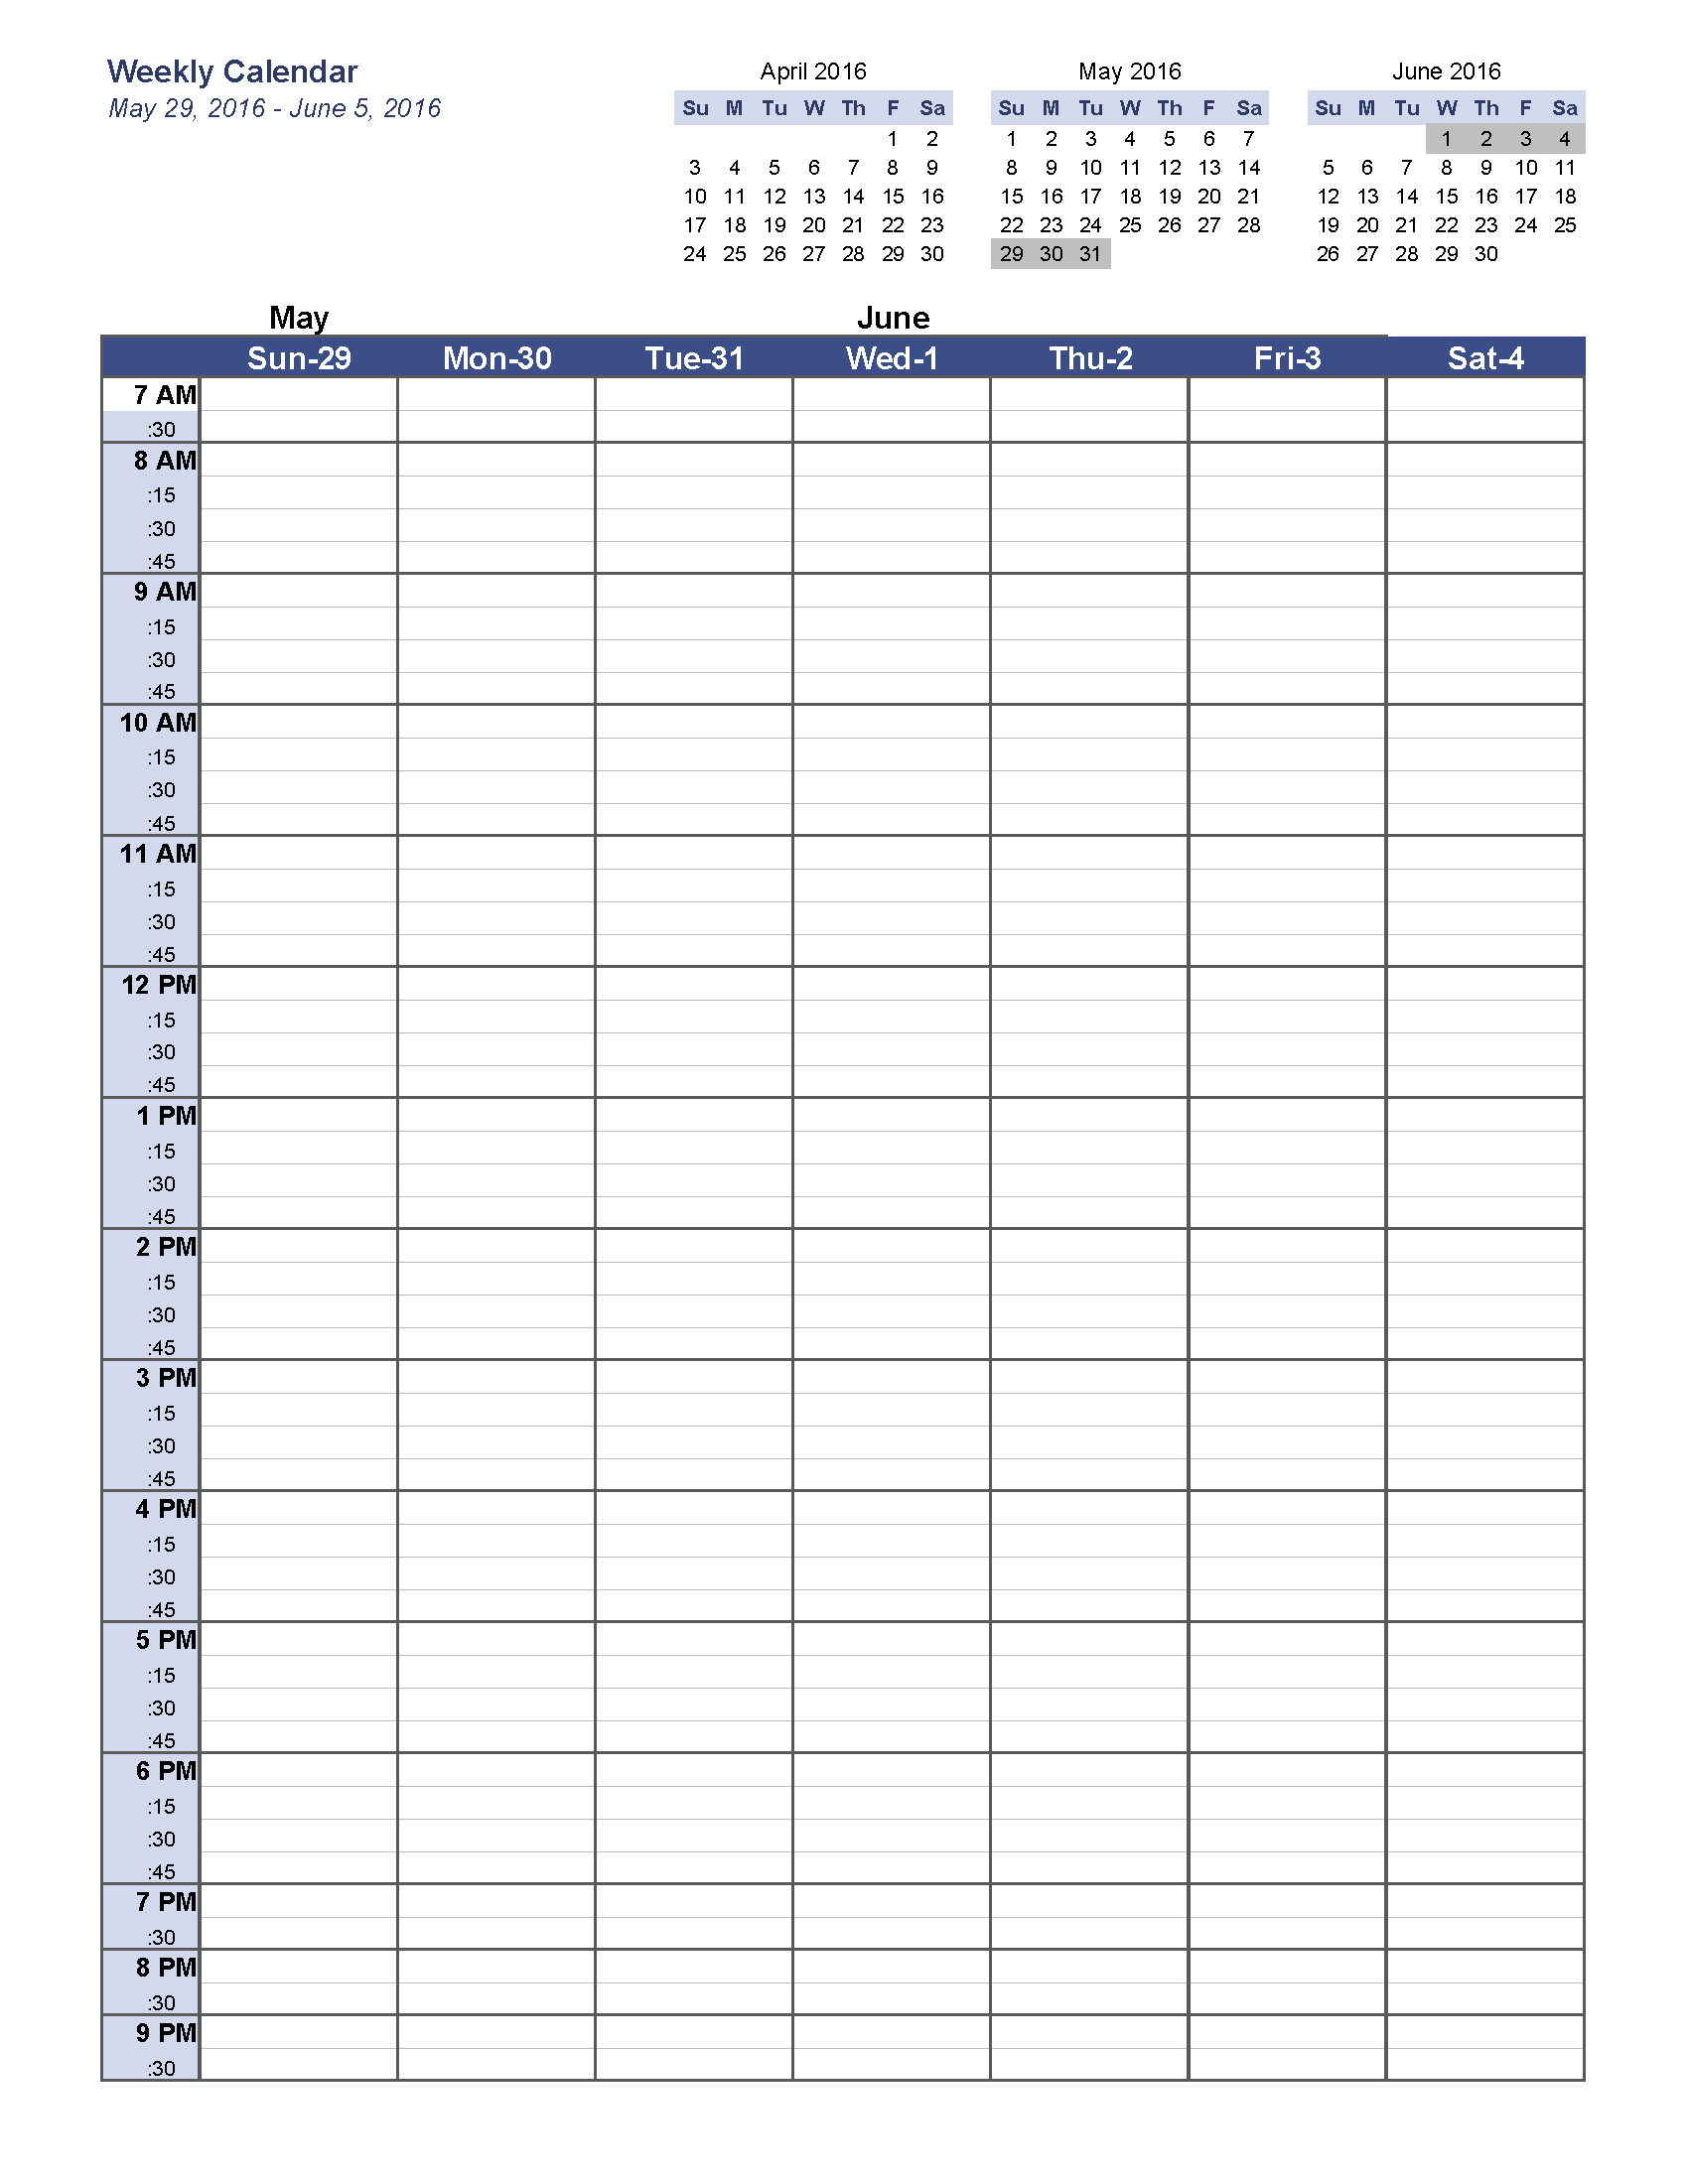 May Weekly Calendar Templates